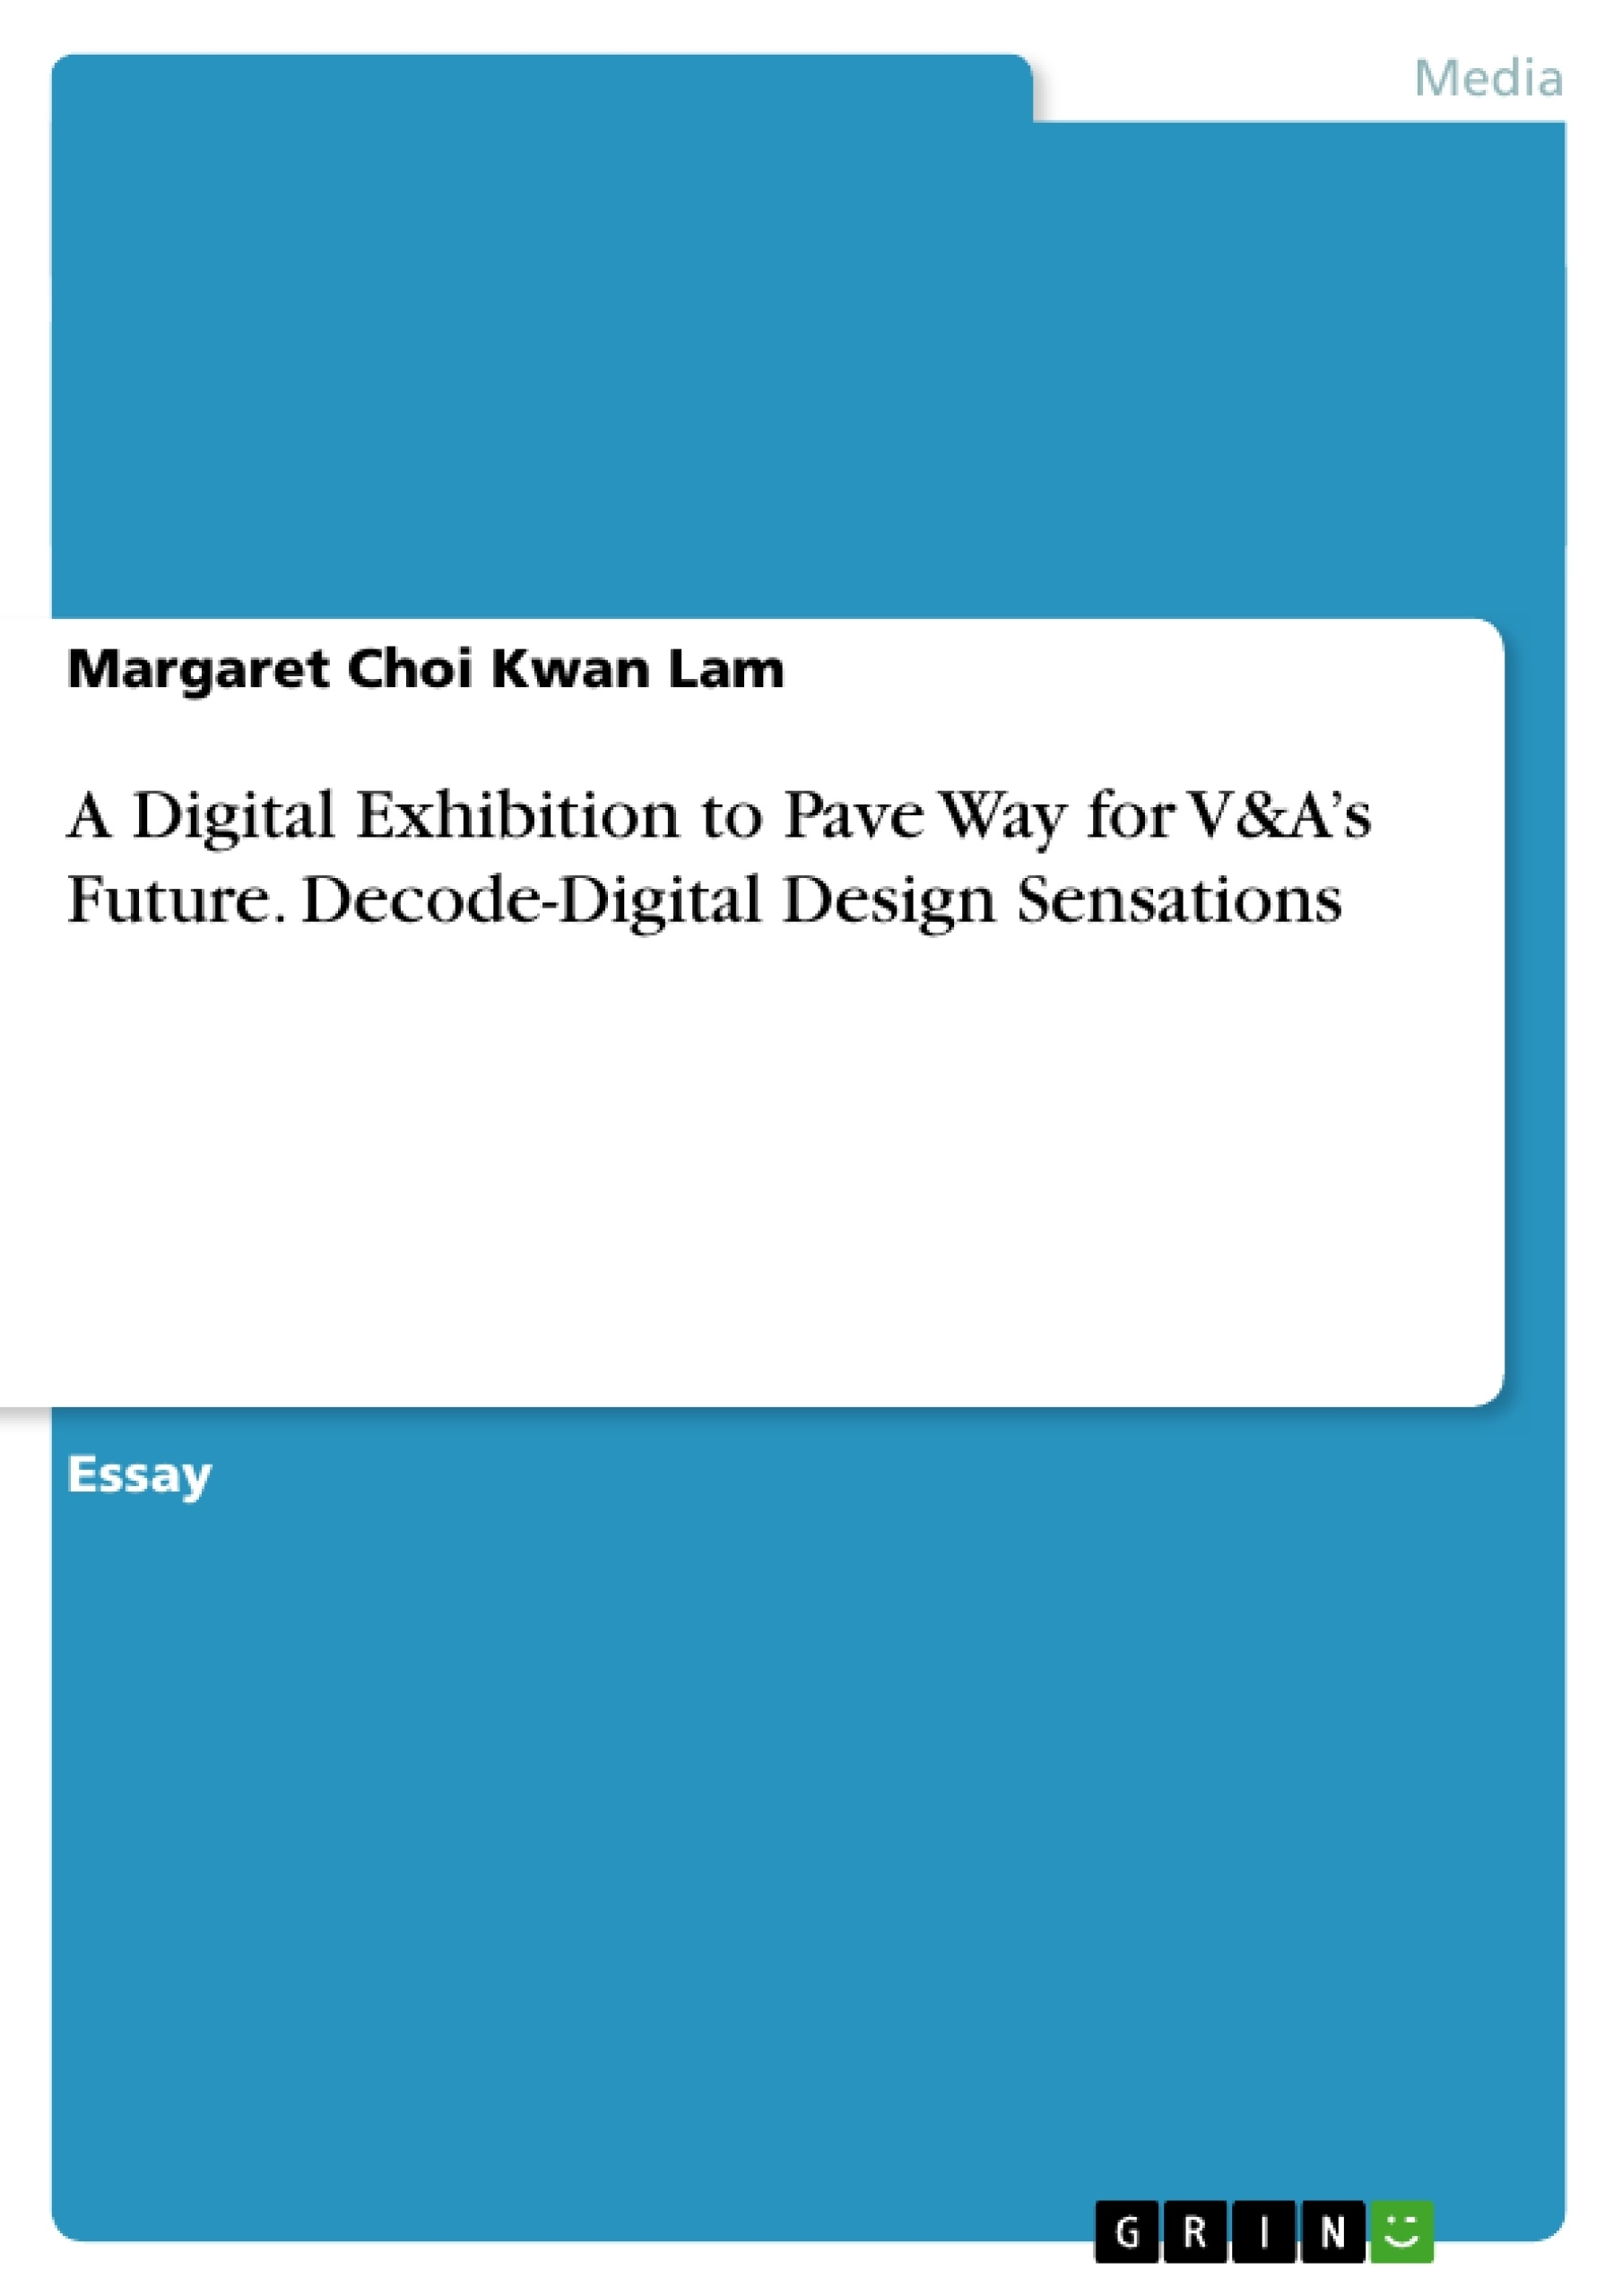 Title: A Digital Exhibition to Pave Way for V&A's Future. Decode-Digital Design Sensations